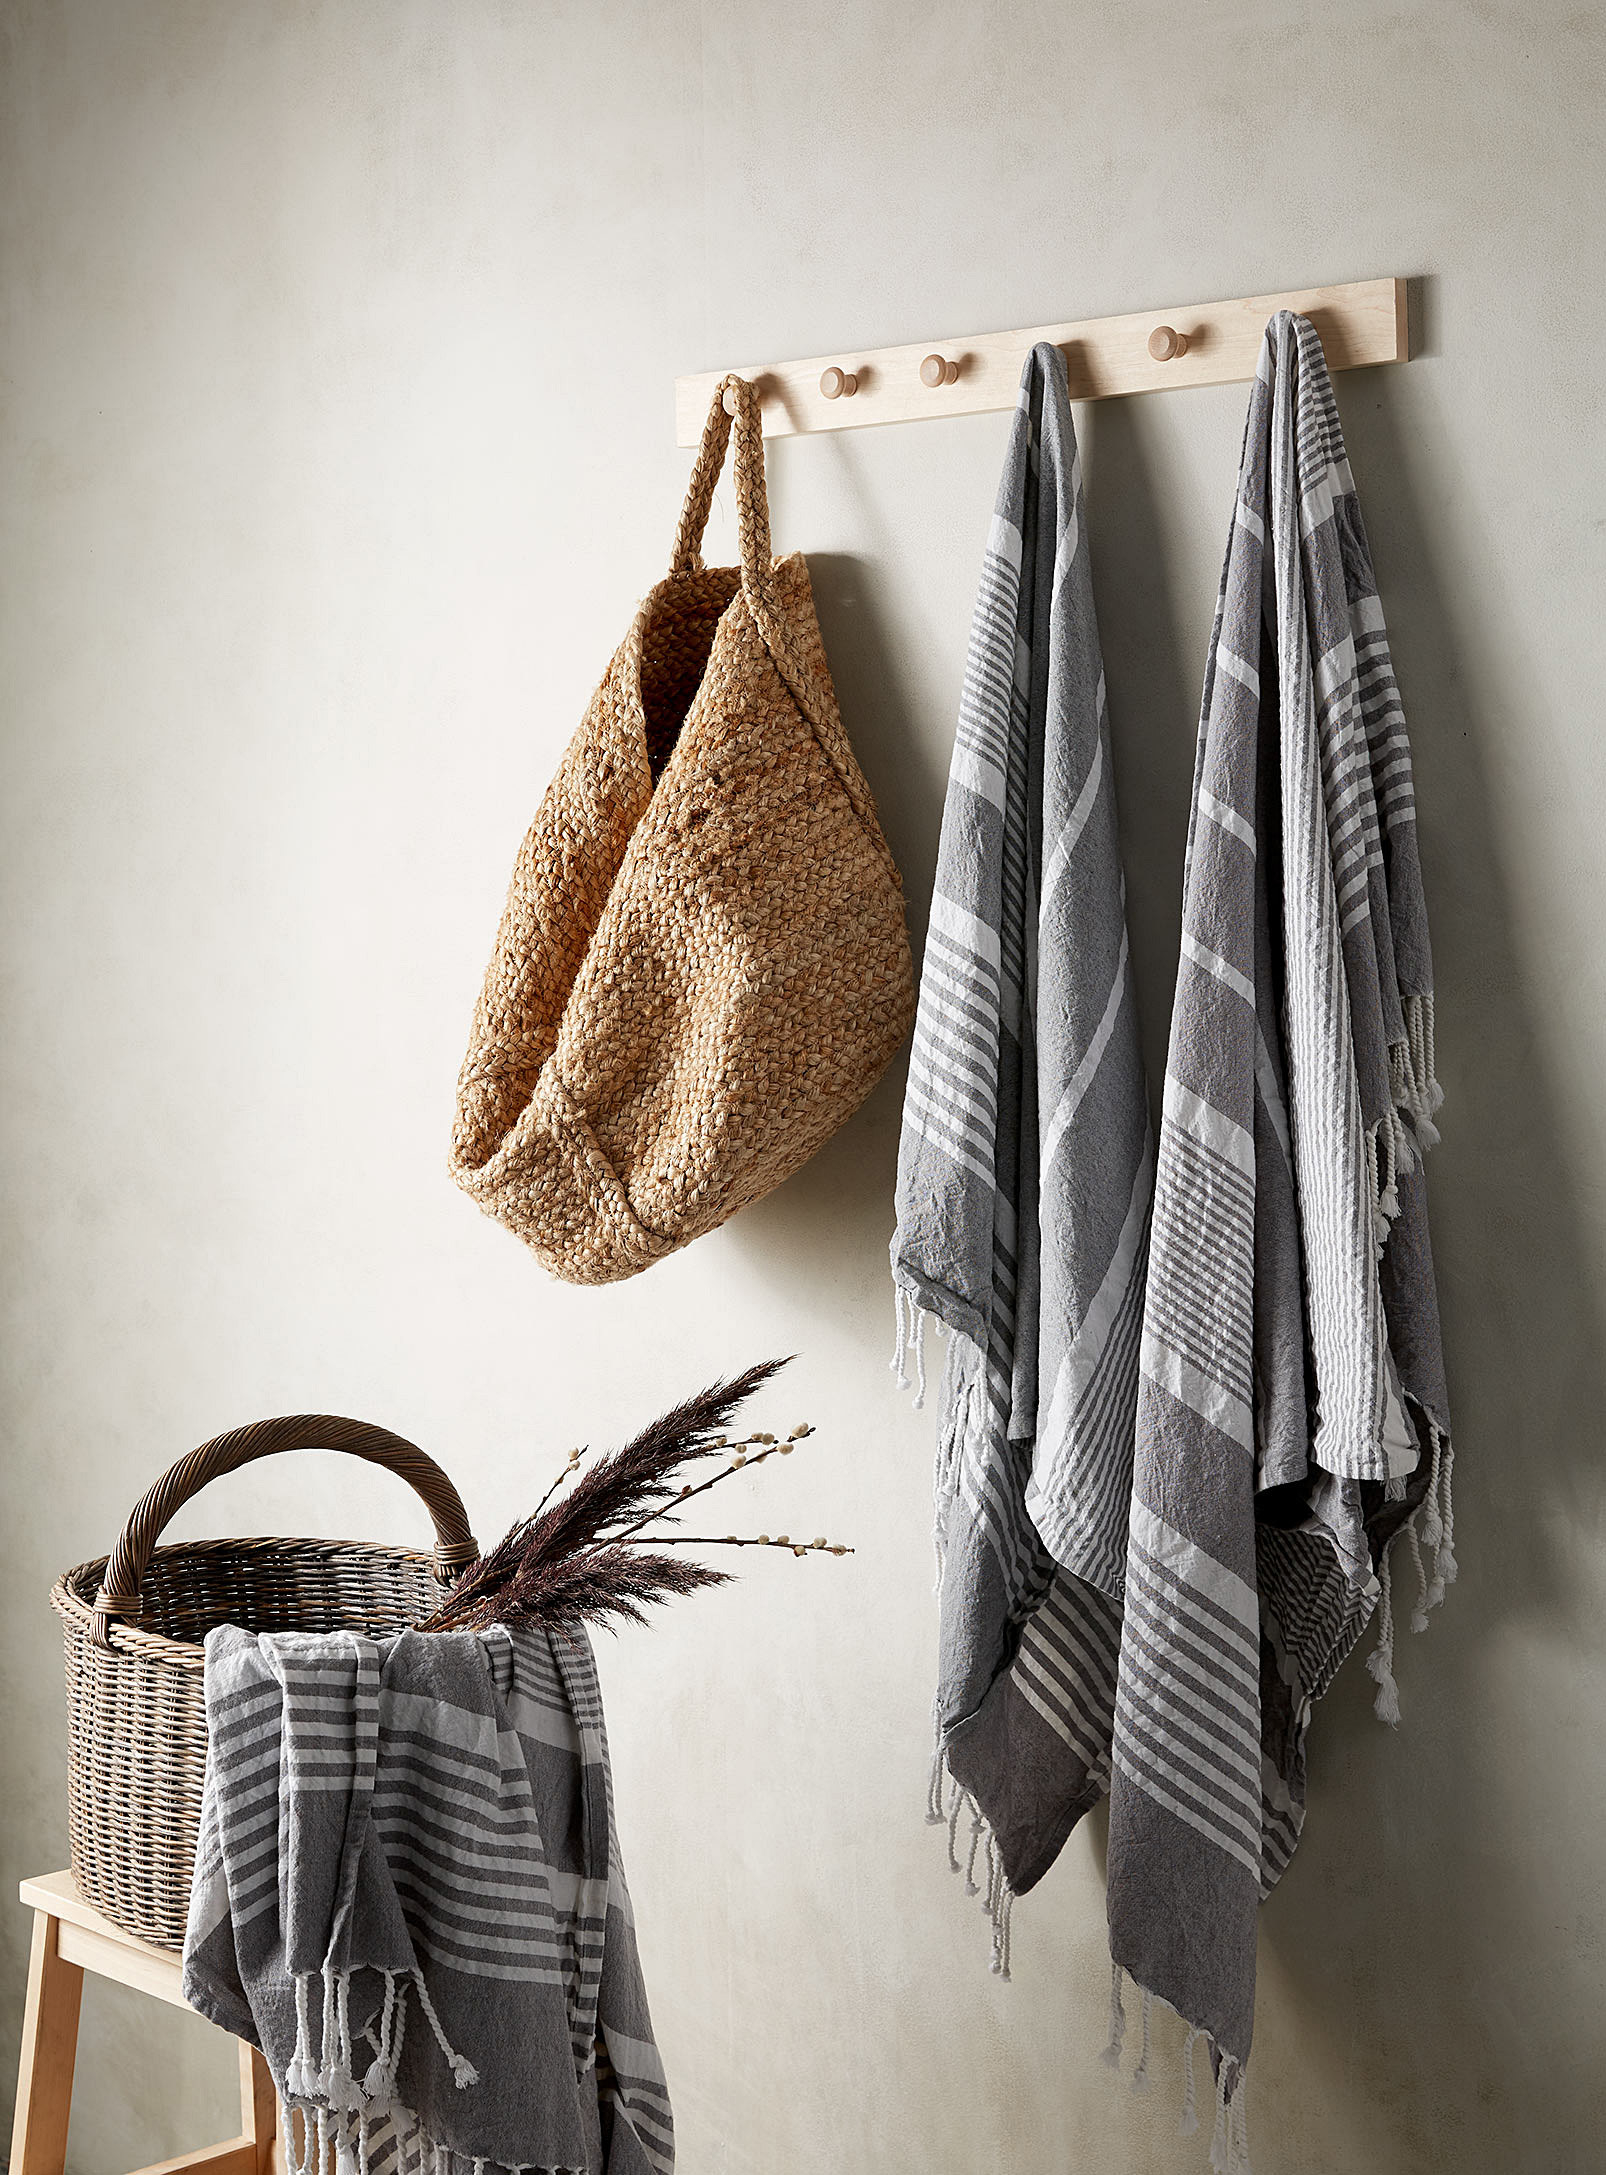 the towels hanging from a hook and out of a basket